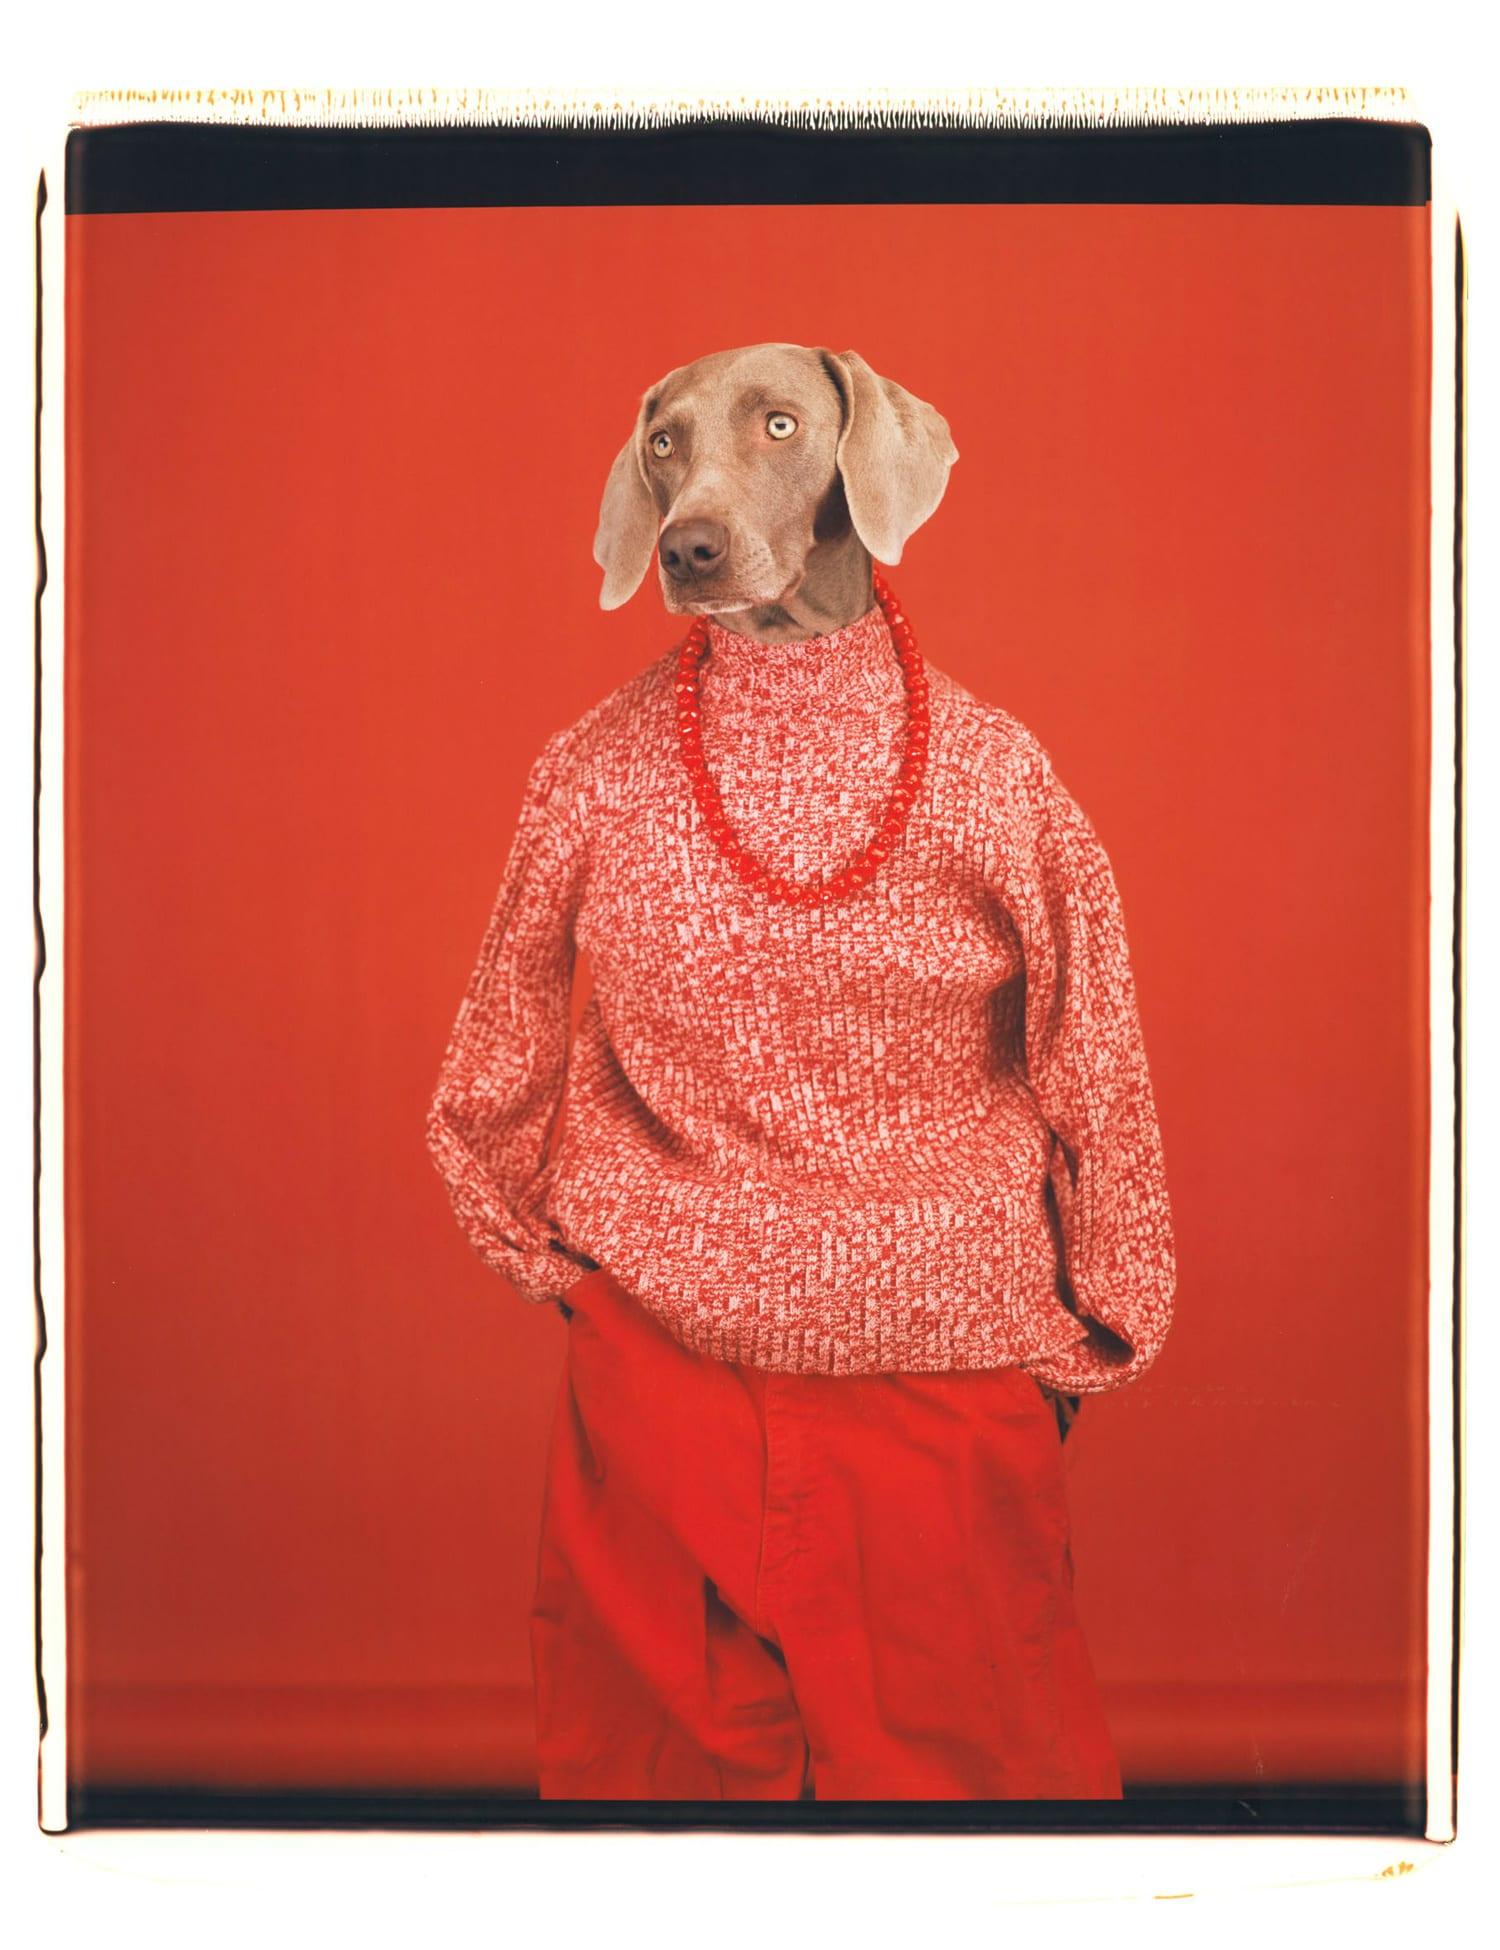 Being Human: William Wegman's Striking & Surreal Portraits of Weimaraner Dogs | Yellowtrace